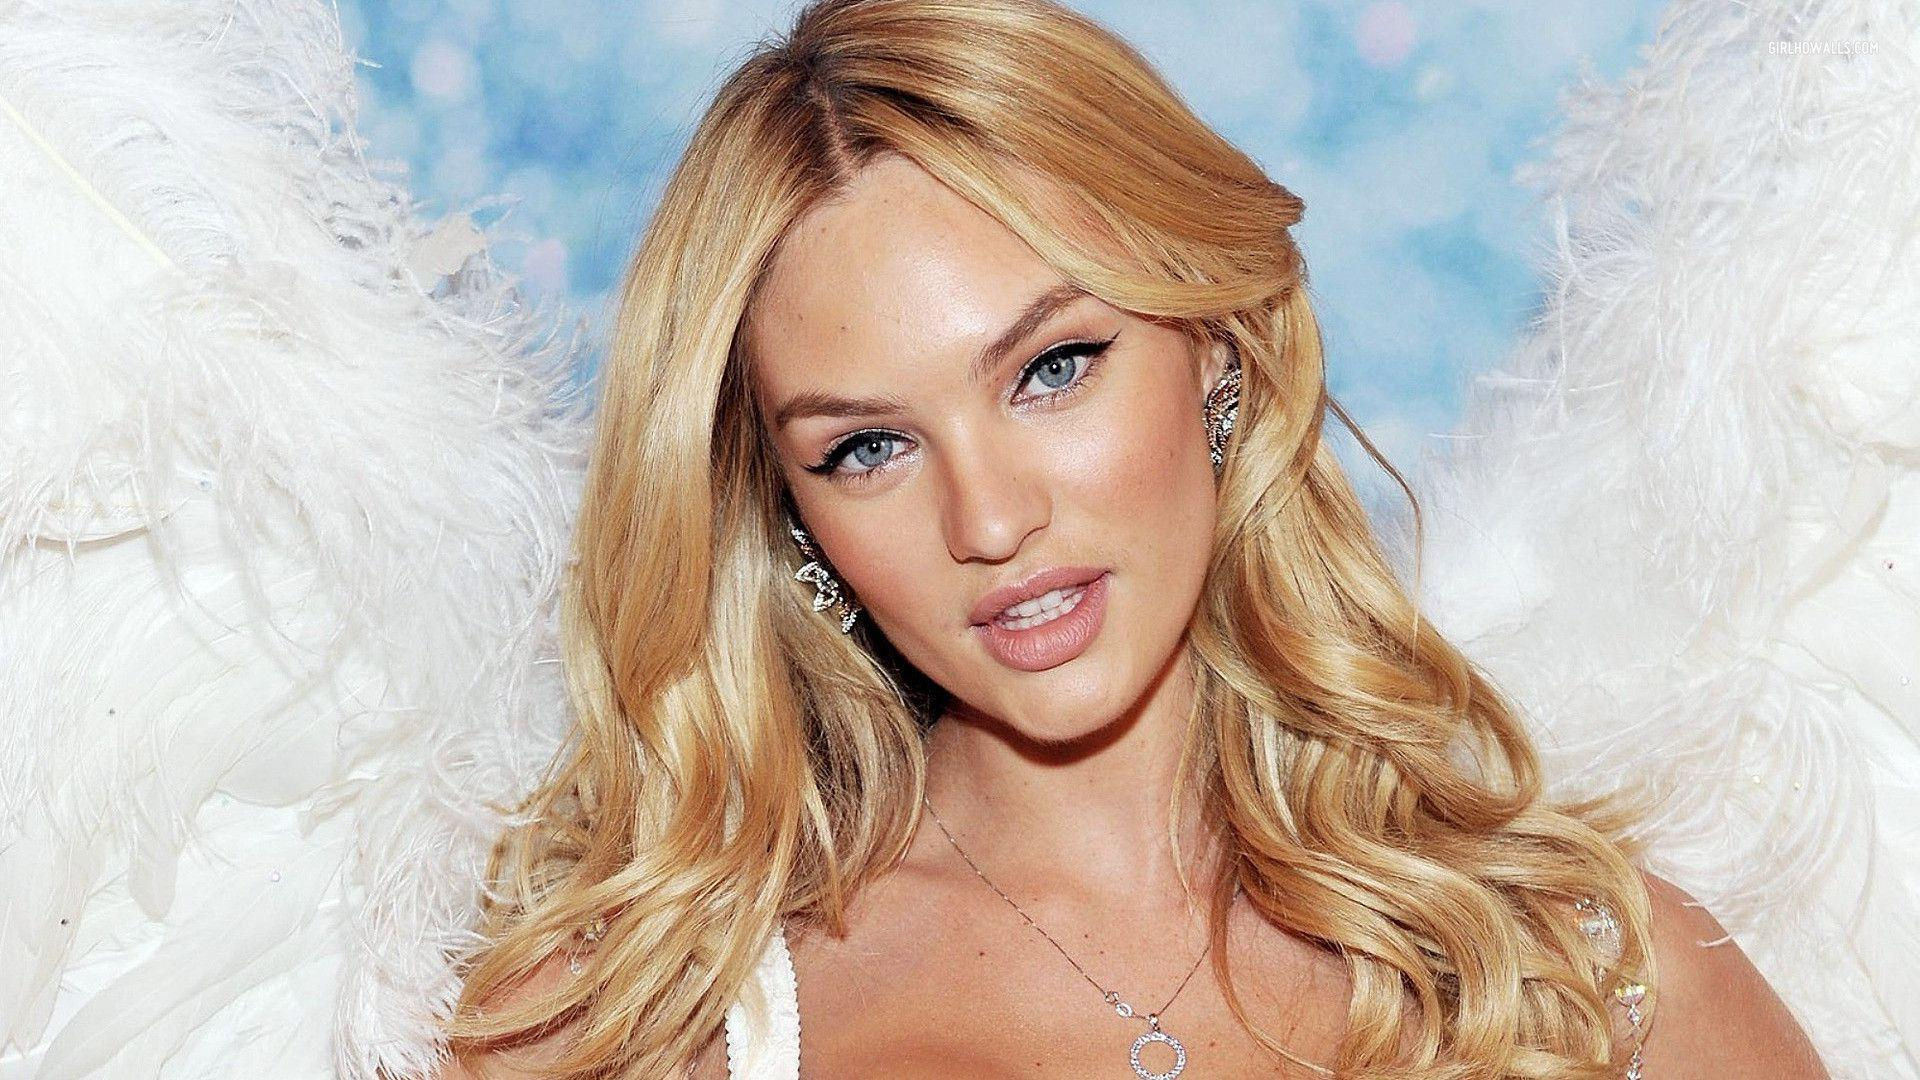 Candice Swanepoel wallpaper #